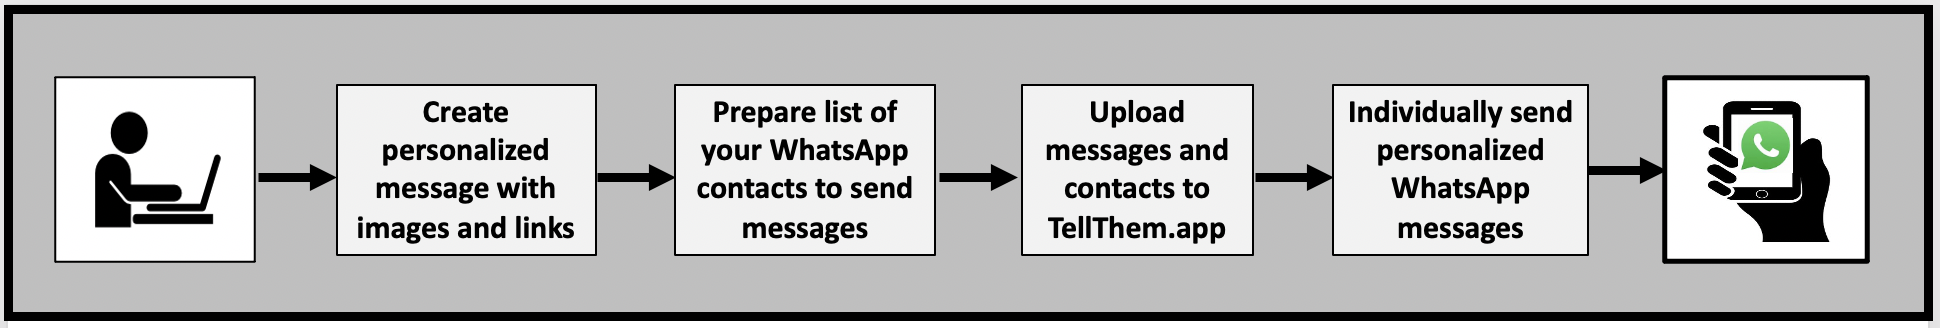 Send personalized campaign messages with WhatsApp using hte TellThem.app